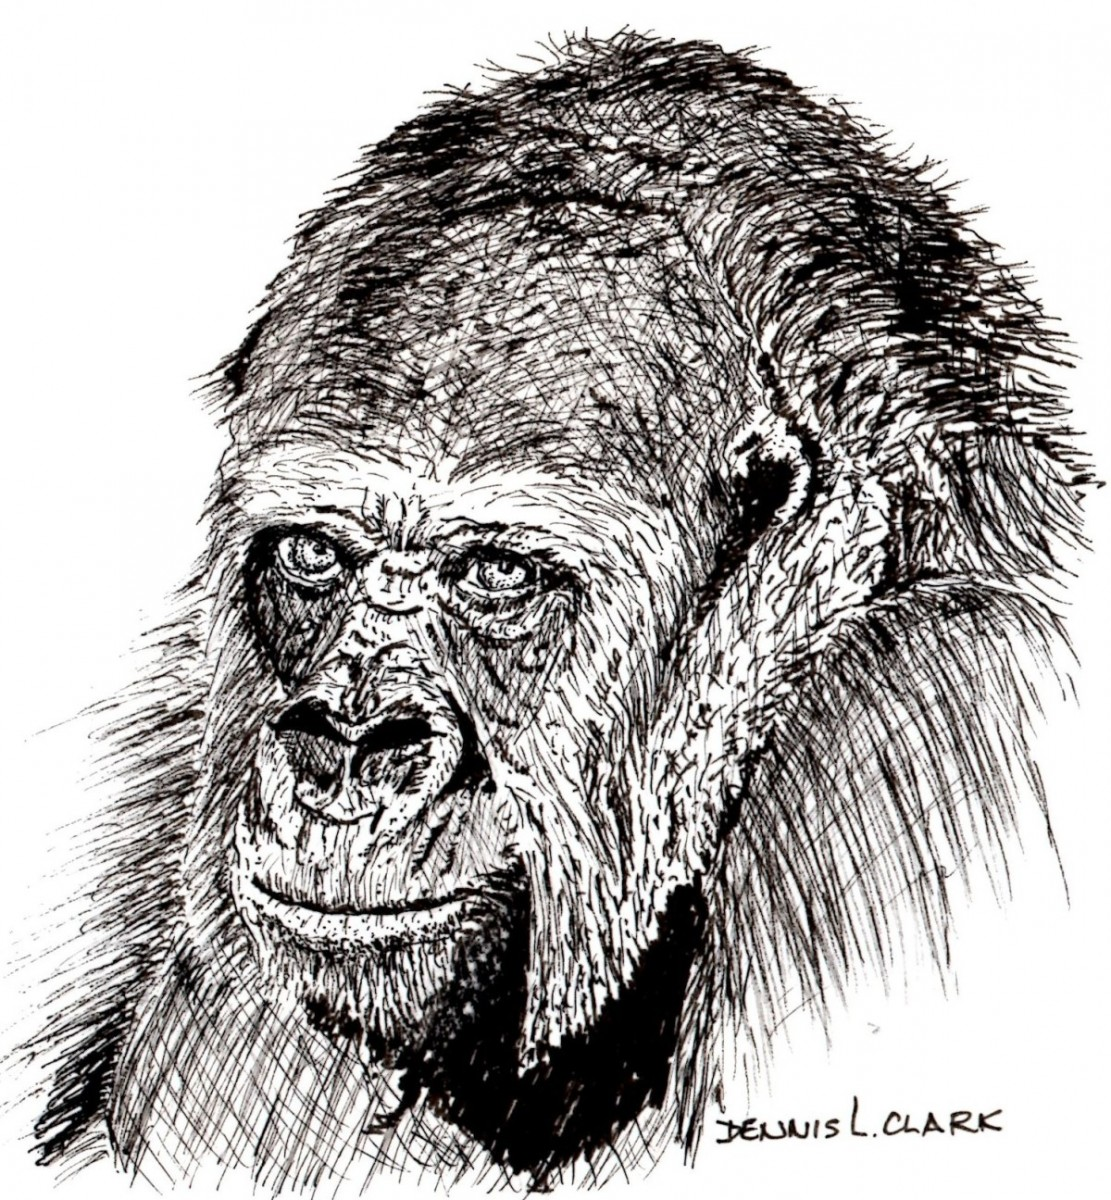 It's just a photo of Superb Drawing Of A Gorilla